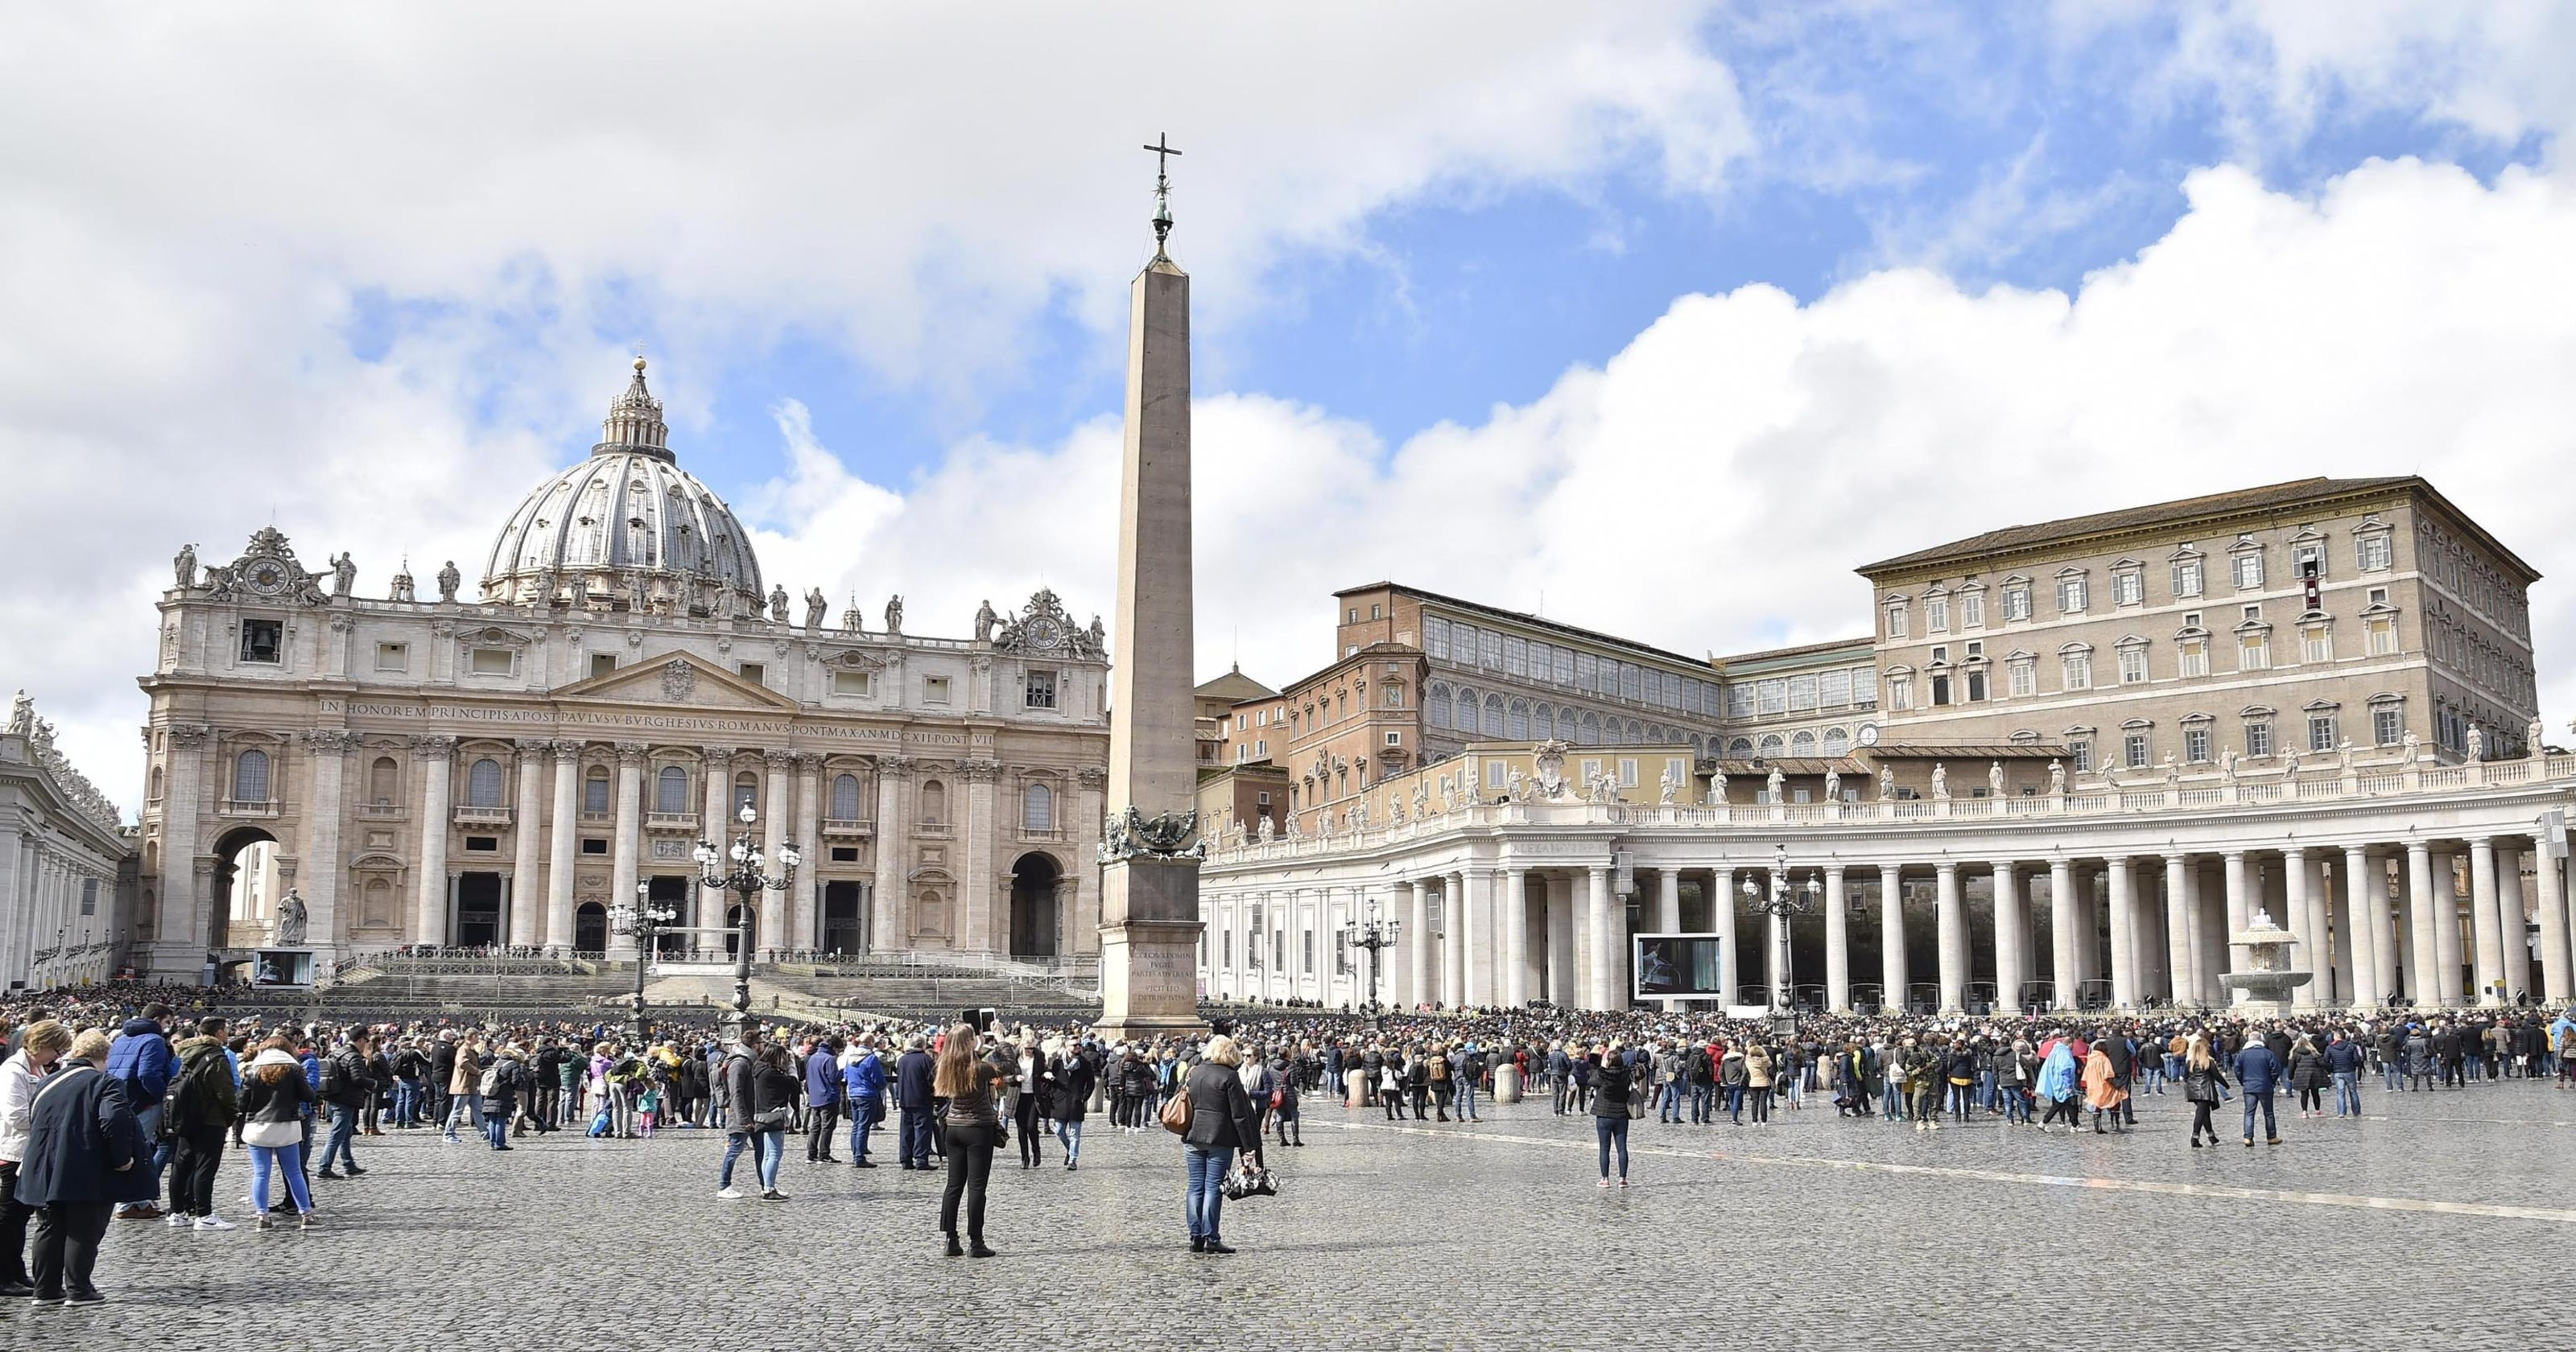 Sex orgies, prostitution, porn: Allegations shake Catholic Church in Italy